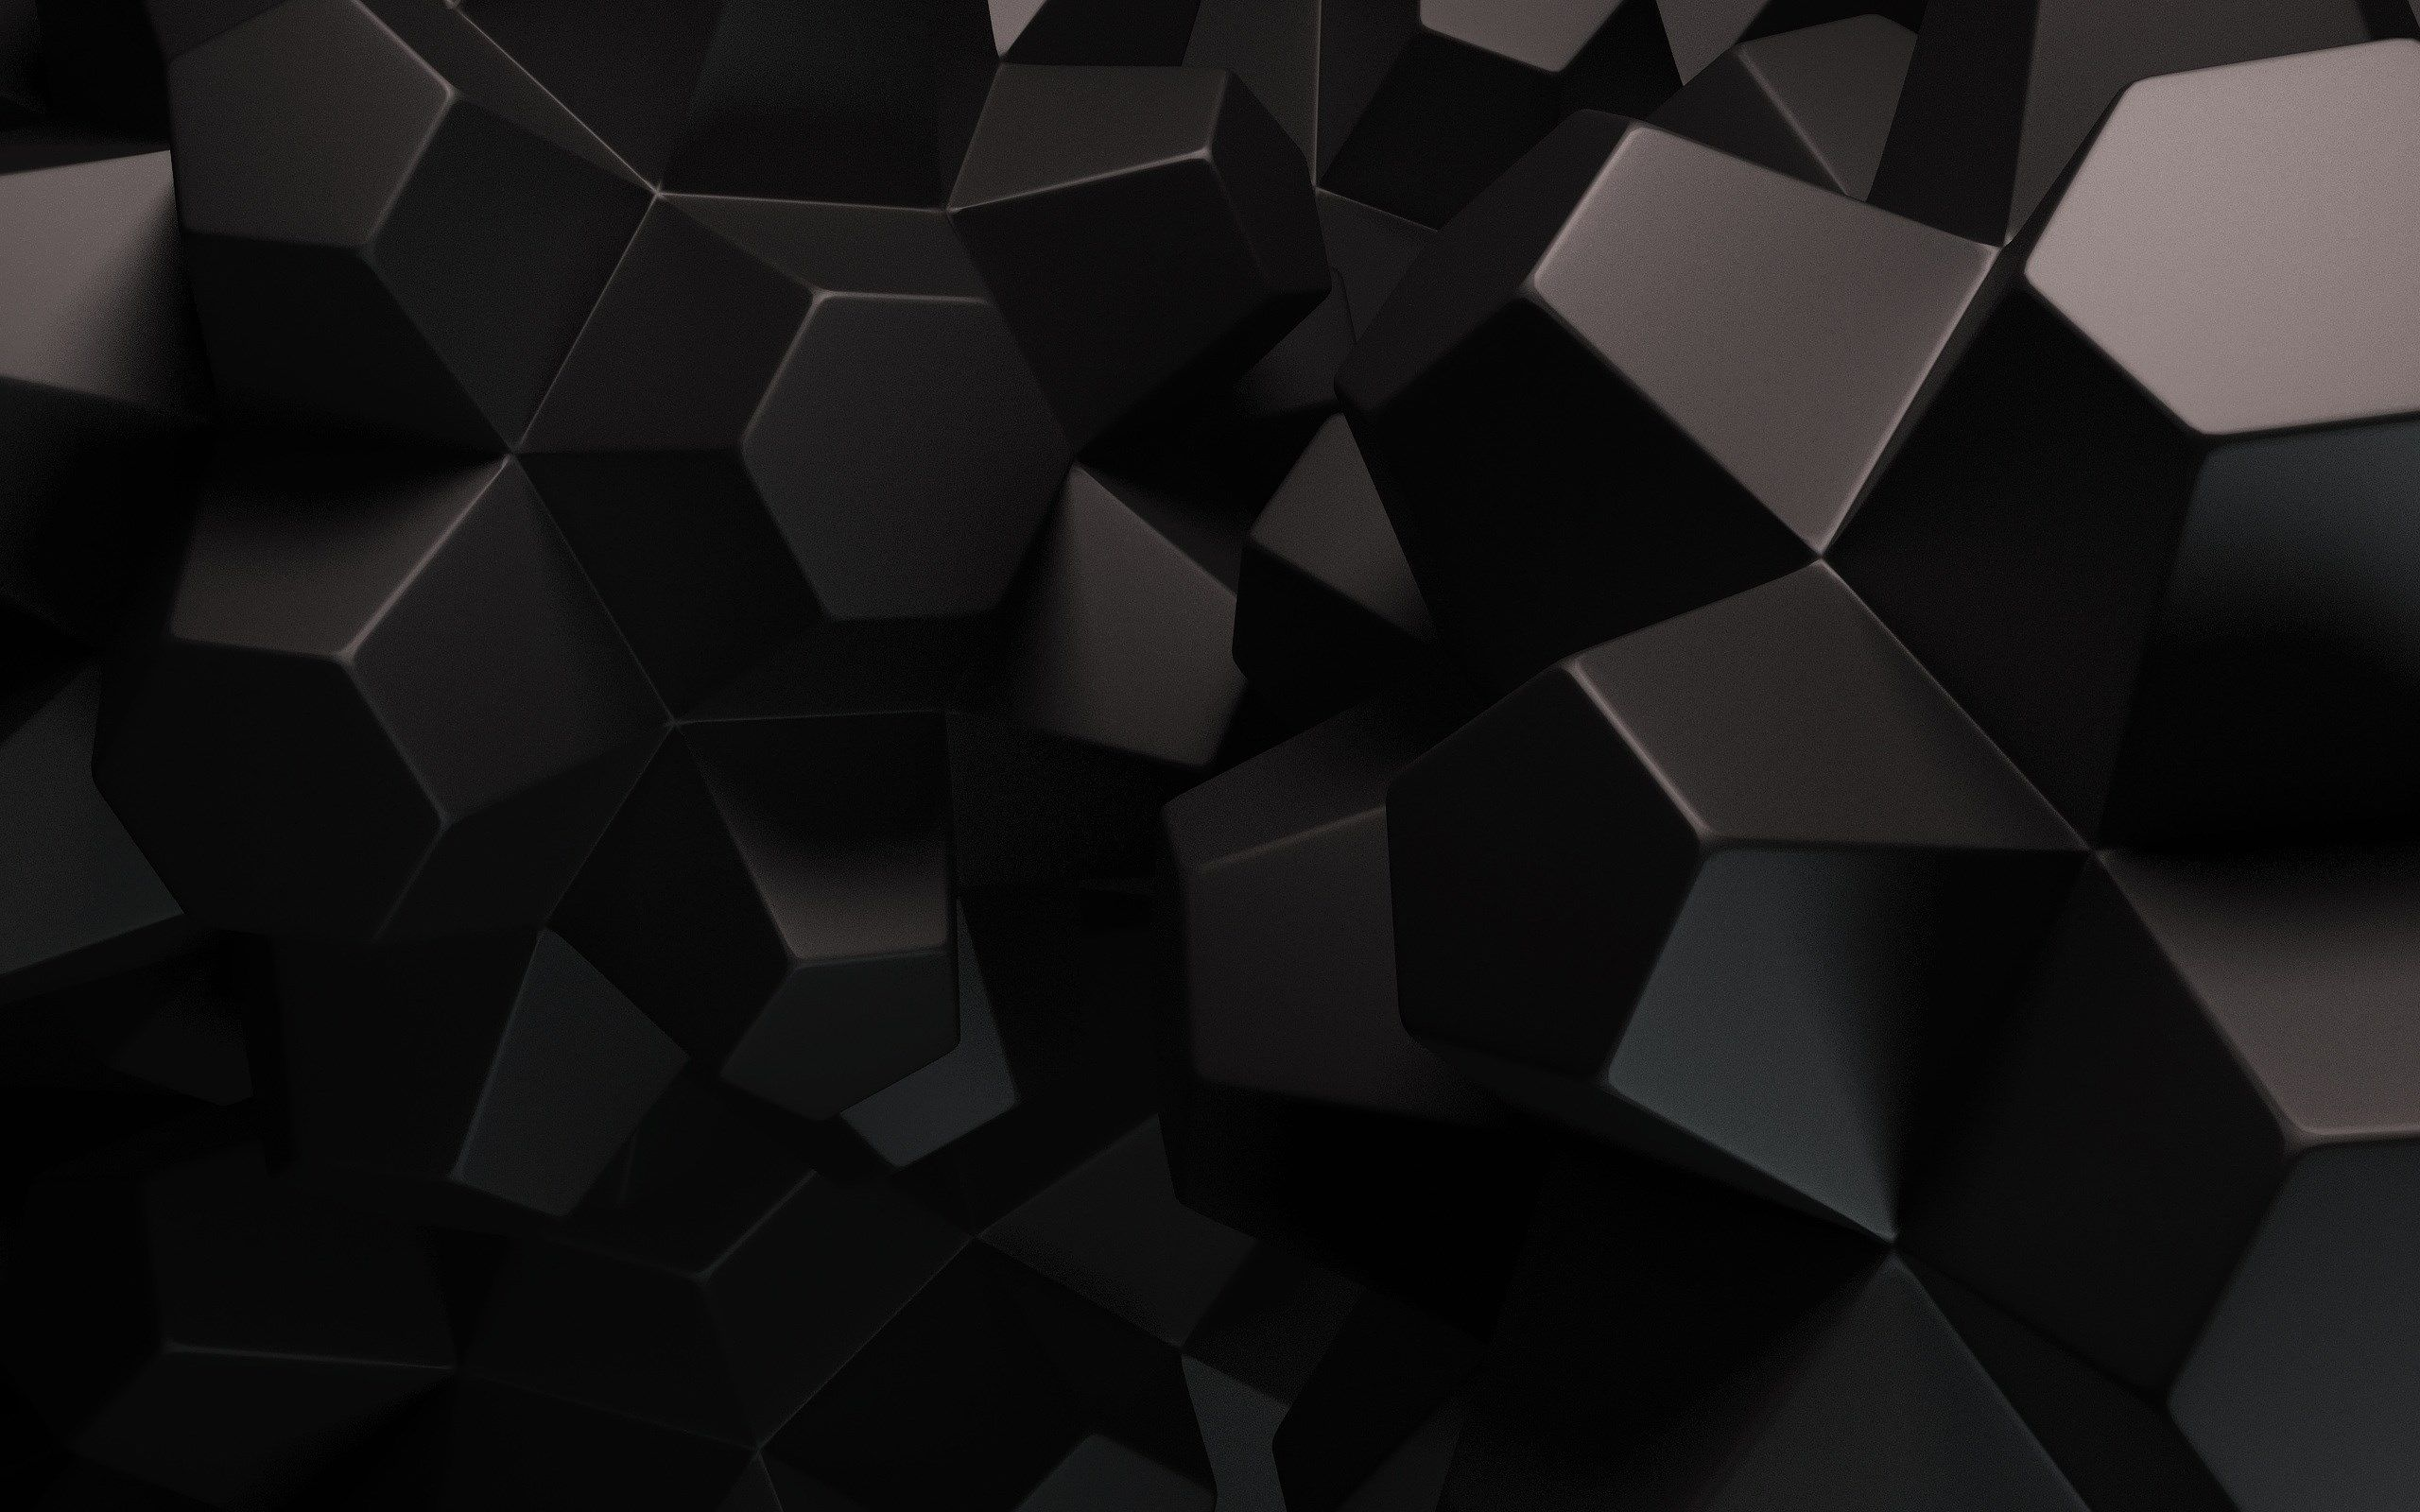 Black Plain Pictures For Laptops Black Background Wallpaper Black Hd Wallpaper Abstract Wallpaper